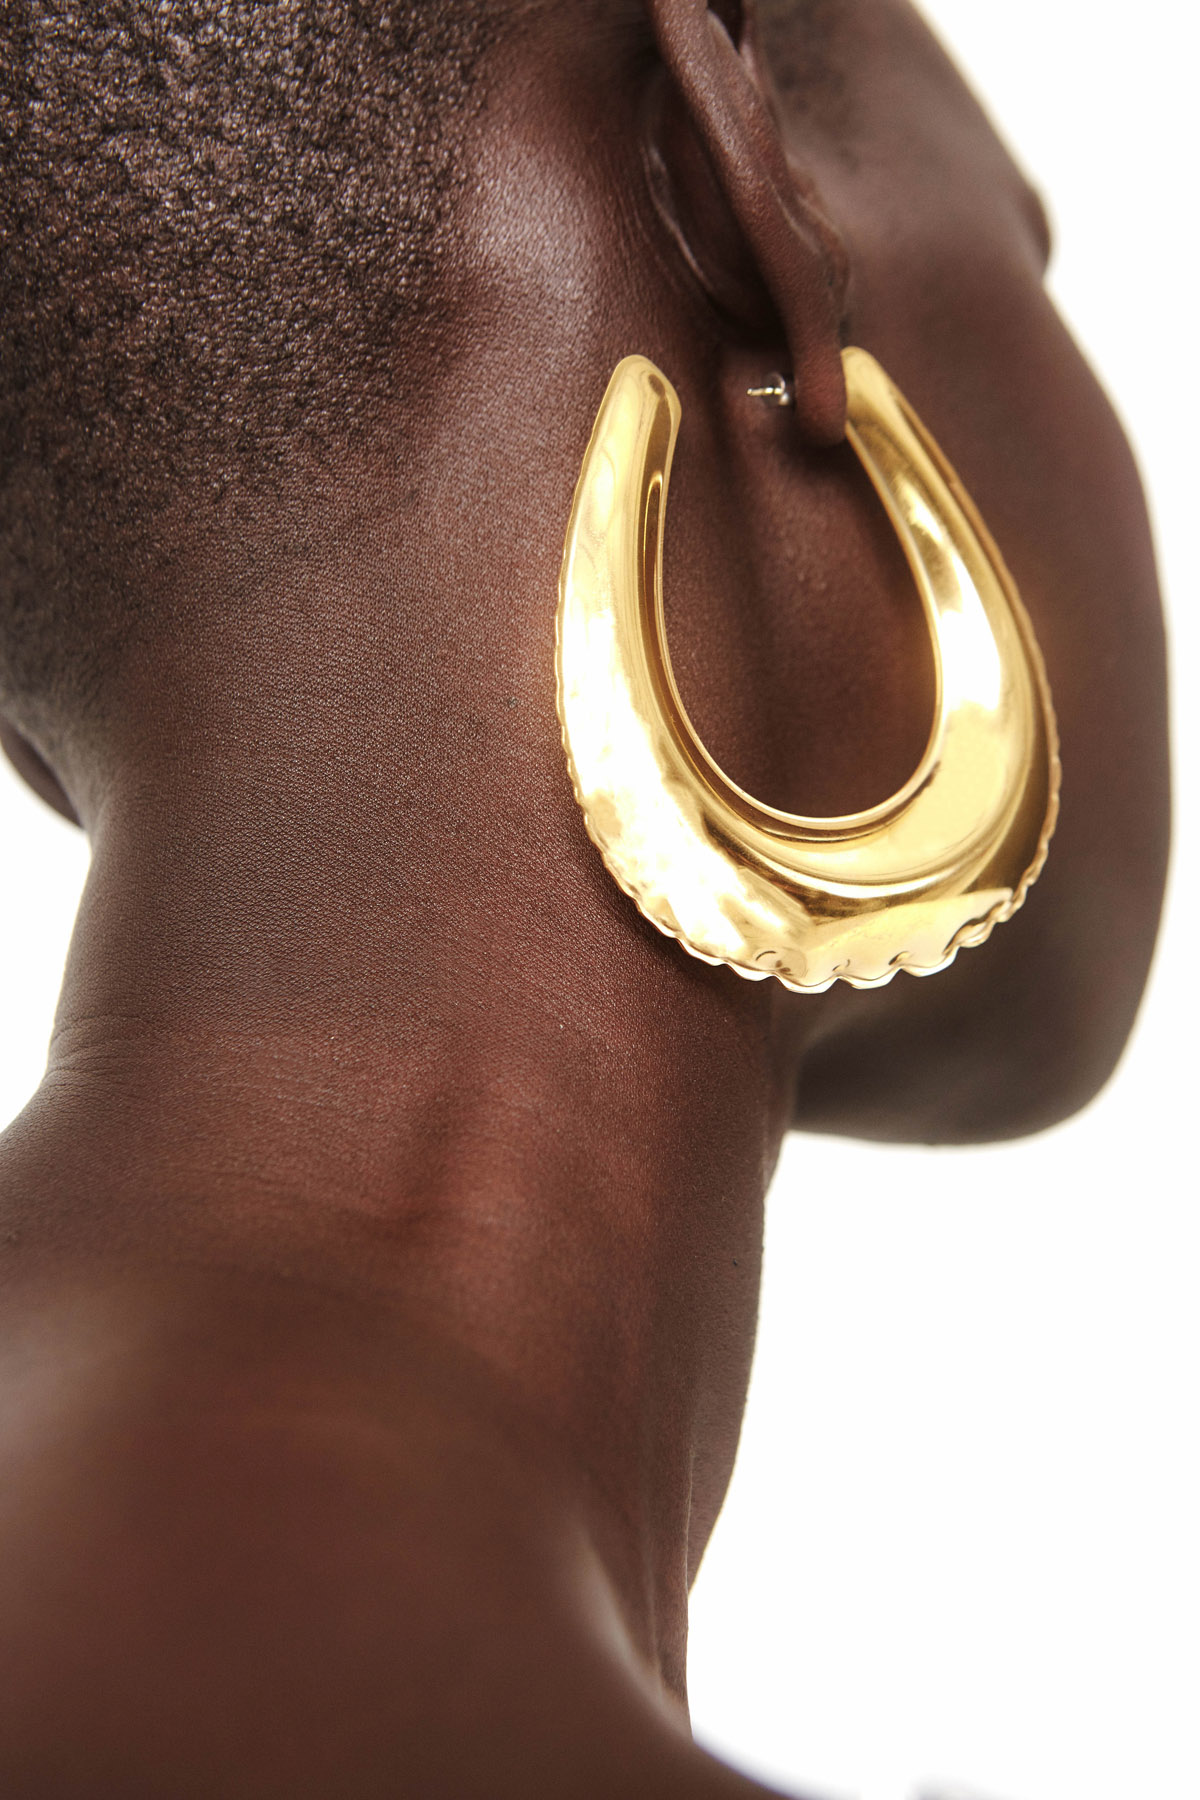 3-inch oversized belt buckle earrings crafted in brass metal in goldtone finishing. Crafted to mimic the silhouette and look of an inflated balloon. Post-back fastening. Imported.